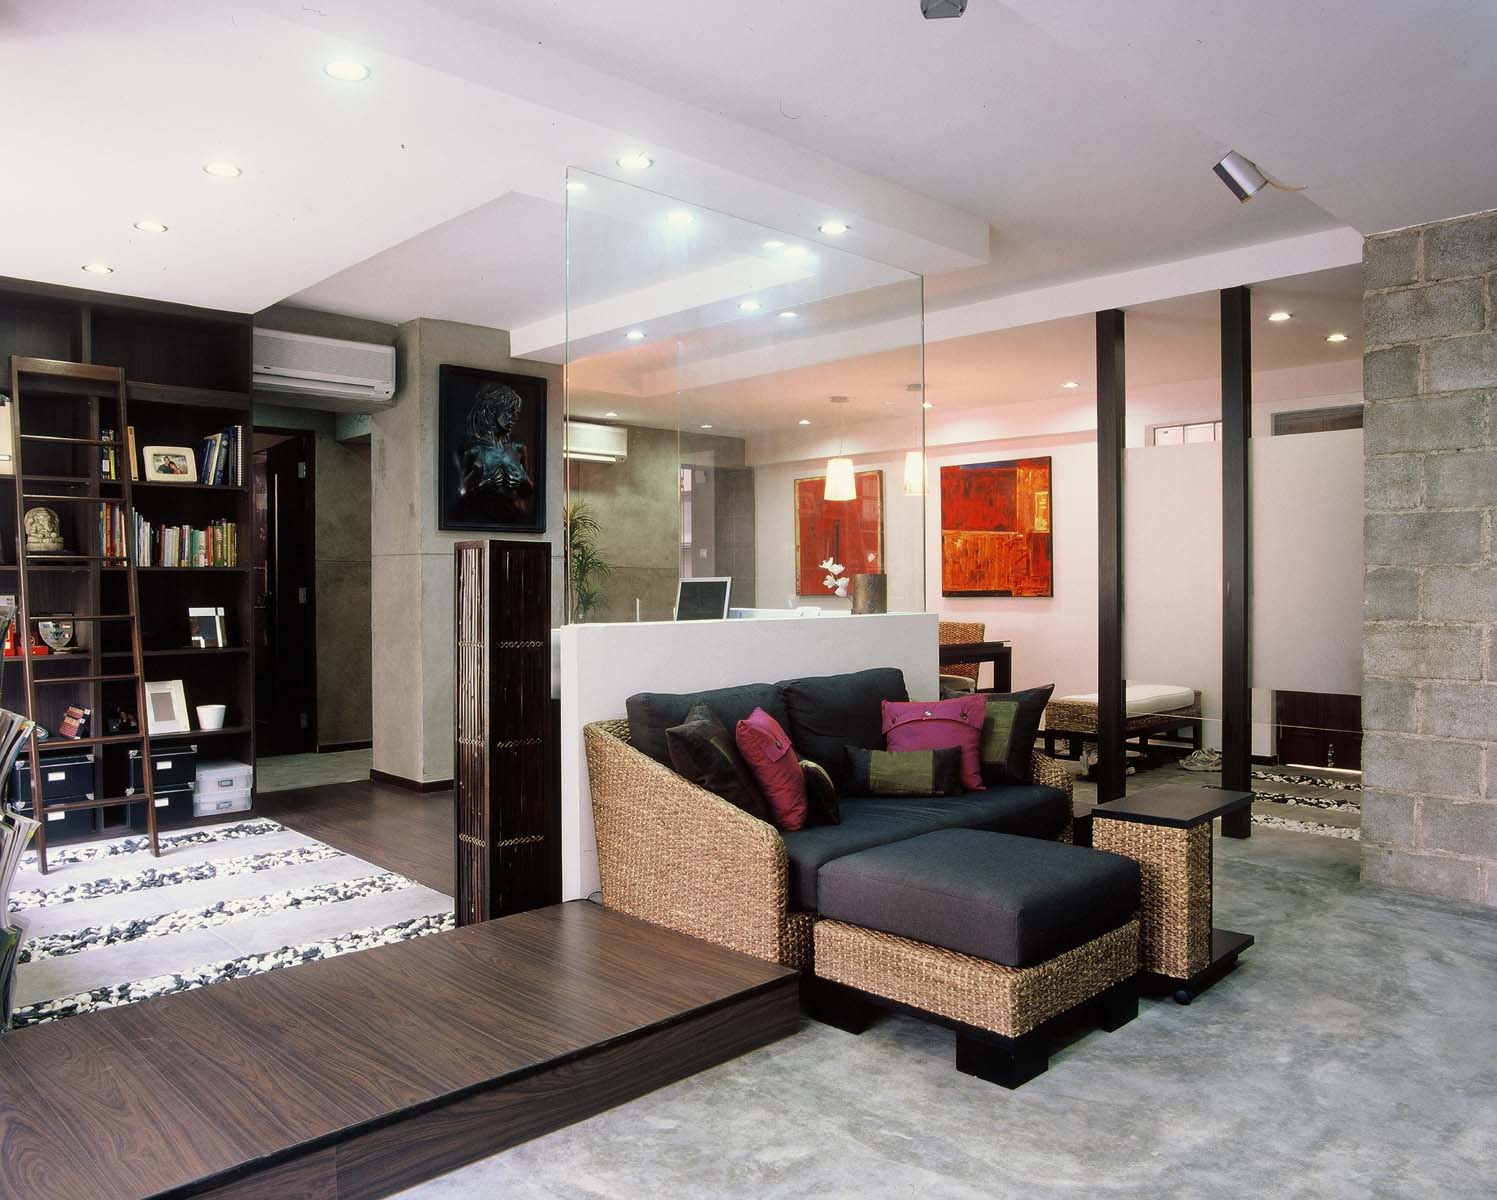 Interior Designer Mumbai Best We Provide Affordable Designing Services In Looking For